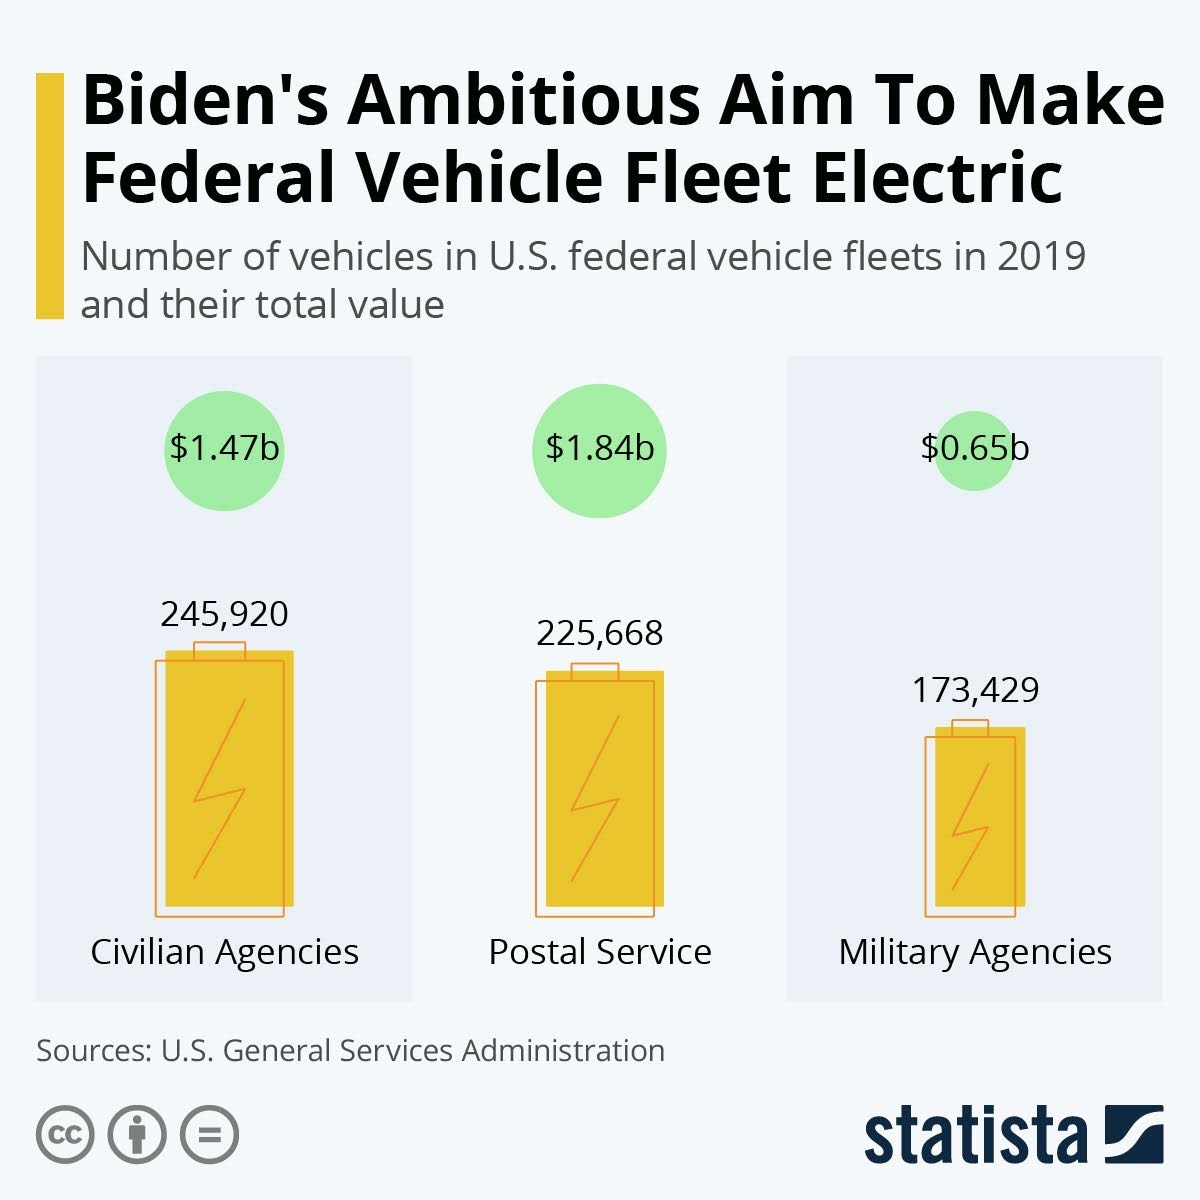 Bidens Ambitious Plan To Make Federal Vehicle Fleet Electric #infographic